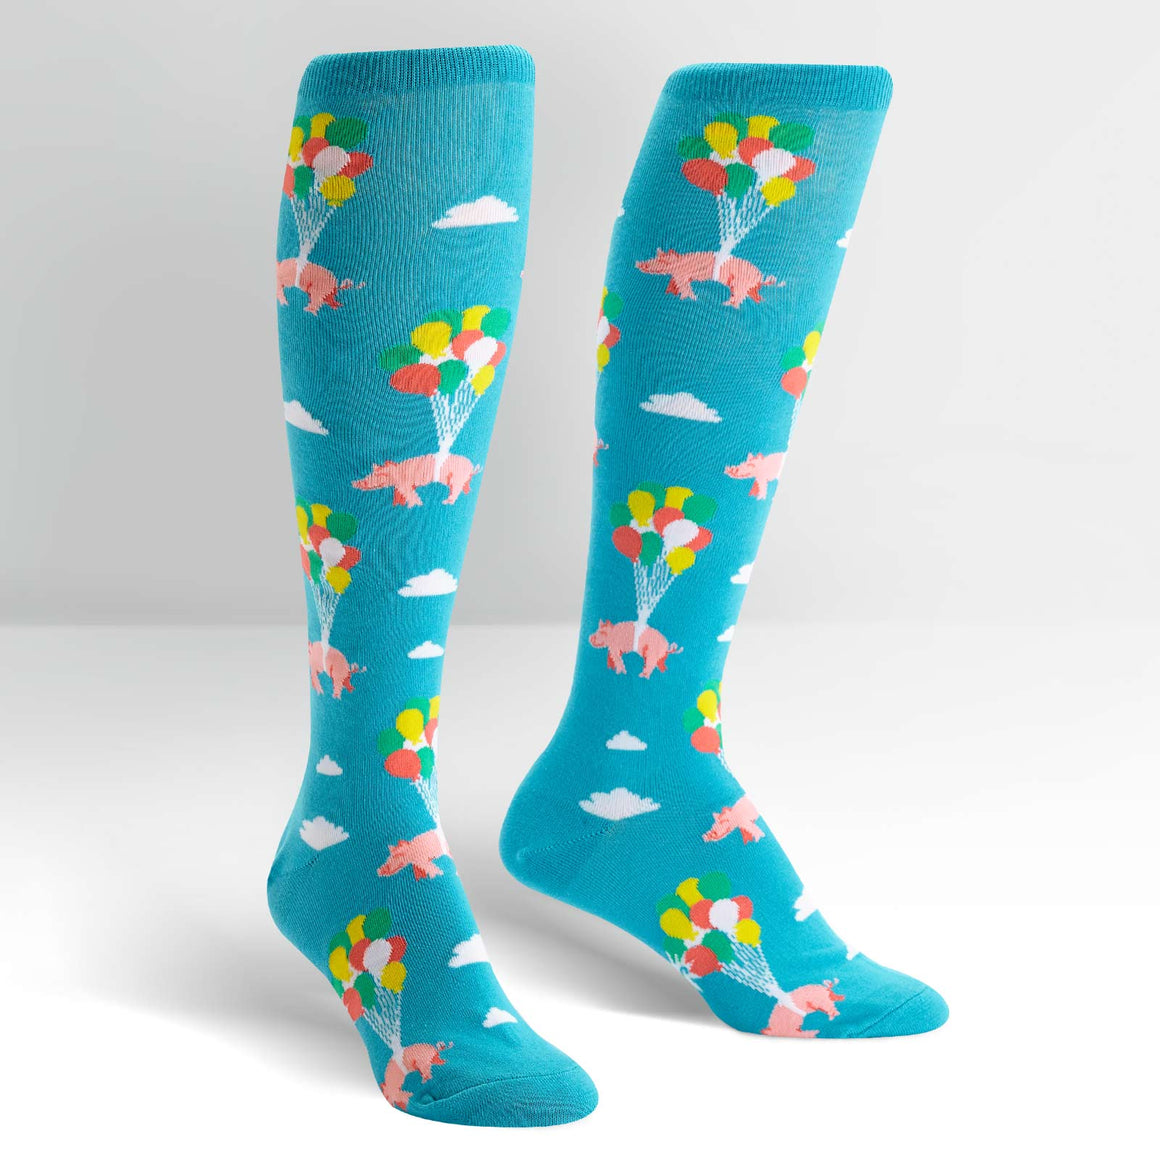 When Pigs Fly Women's Socks by Sock it To Me - Compassionate Closet